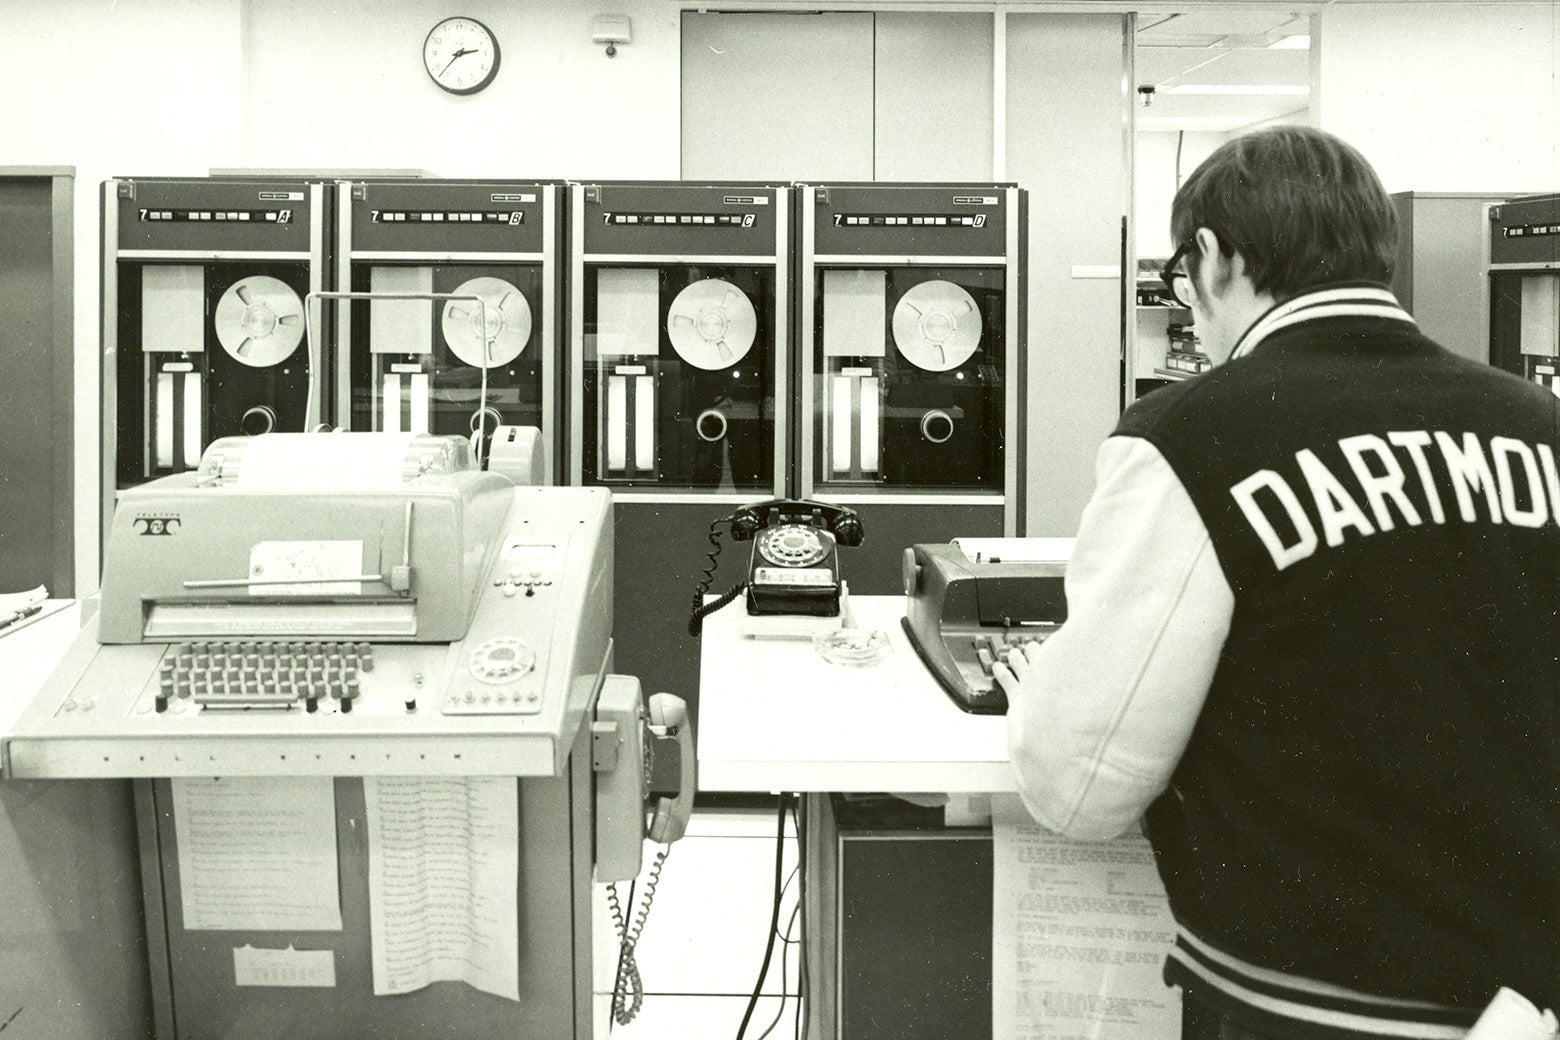 A Dartmouth College student works on an upgraded GE 635 time-sharing system.